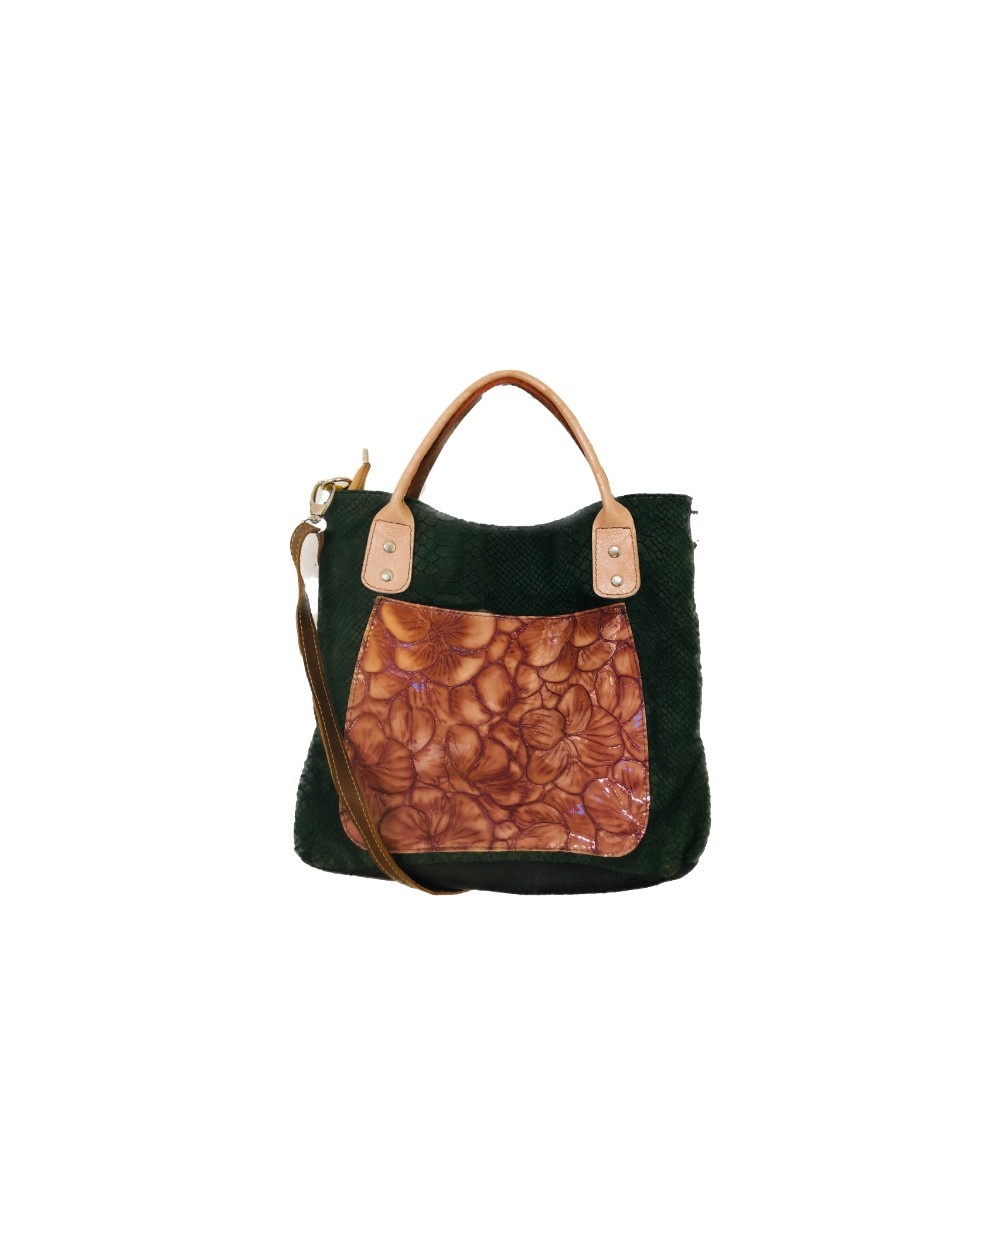 Due to Bag 01